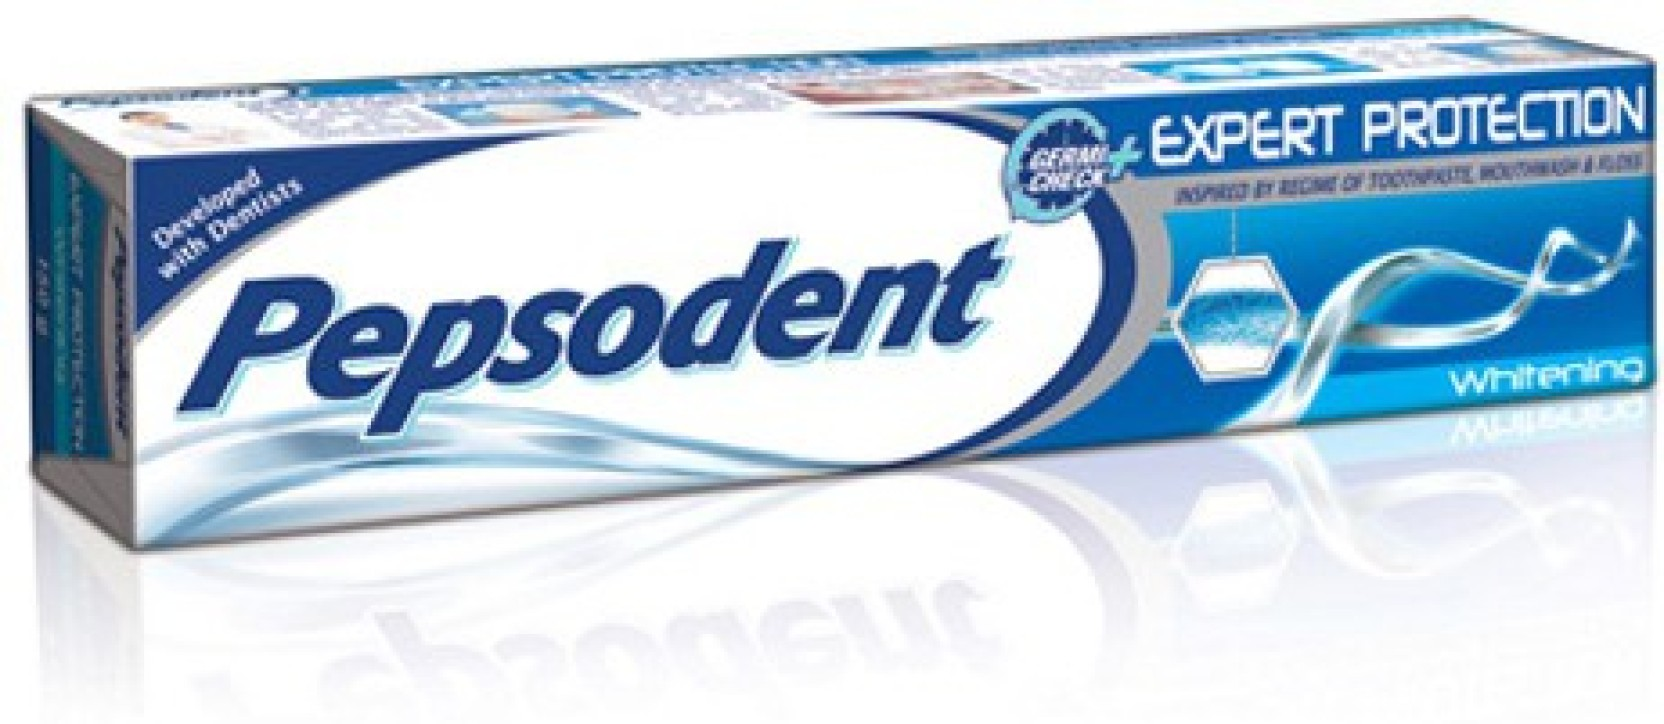 pepsodent expert protection whitening